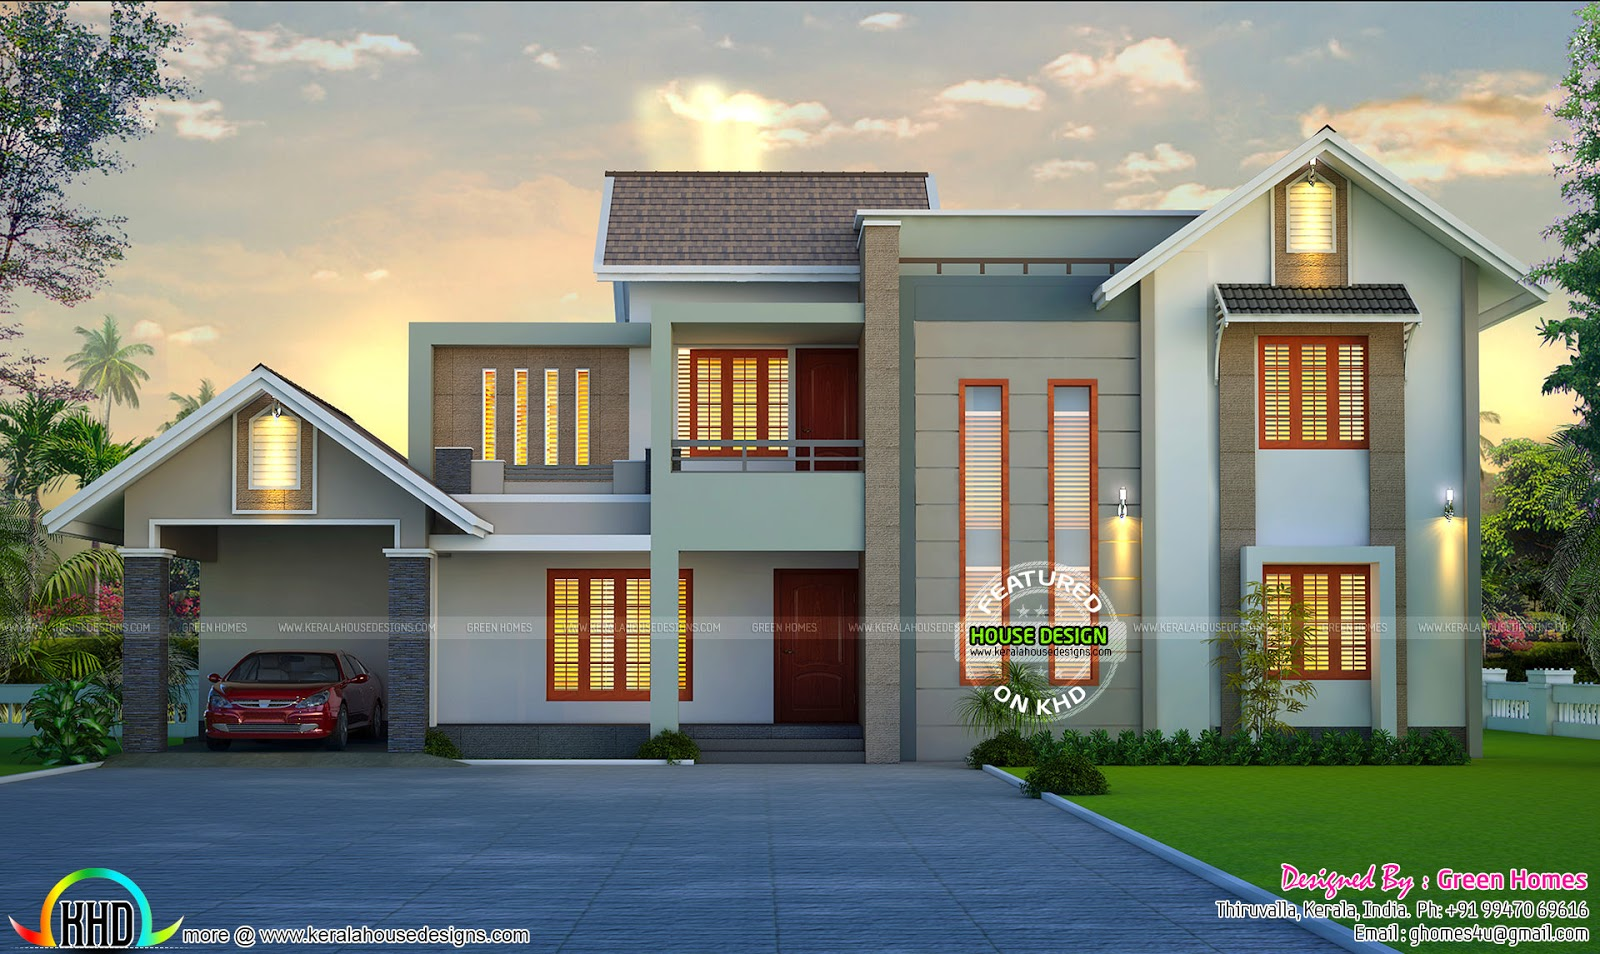 Beautiful home design by green homes thiruvalla kerala for Green home designs